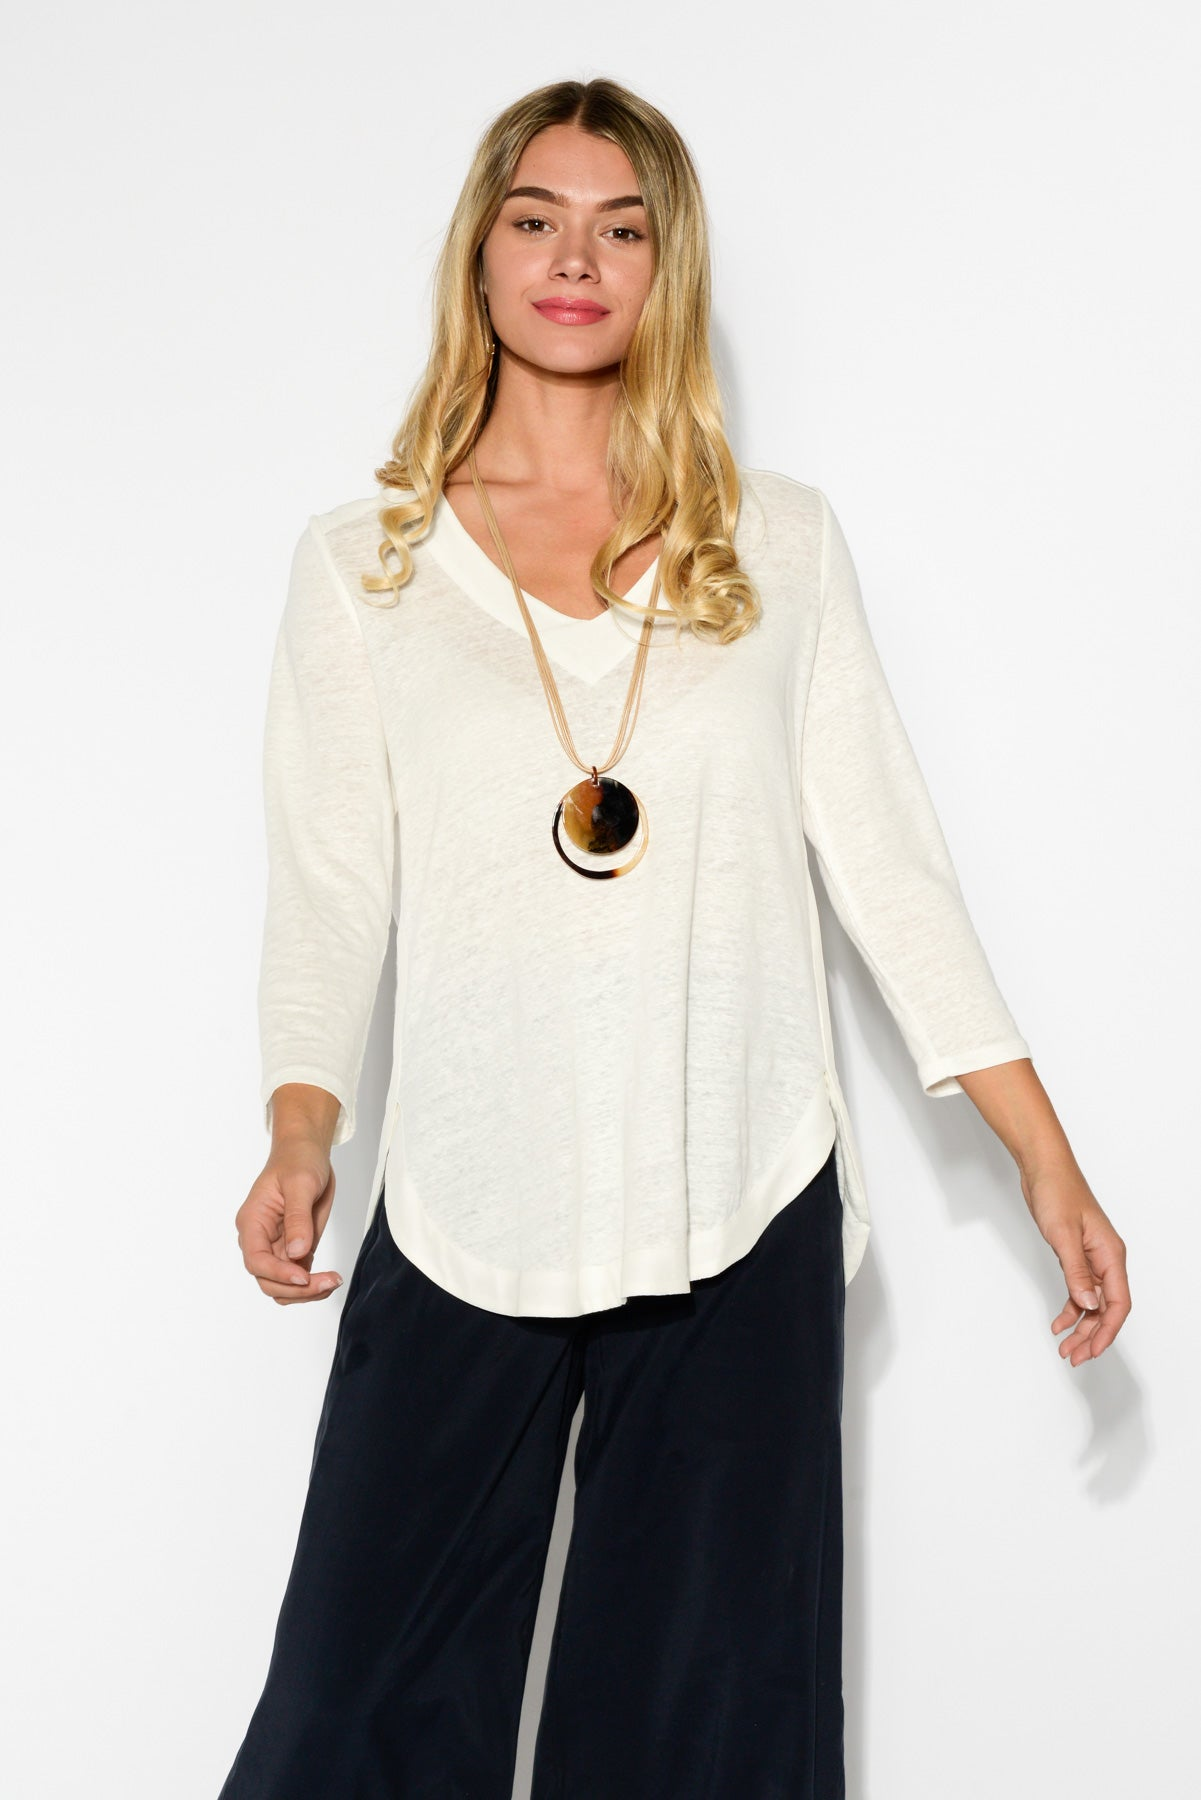 Petra White V Neck Linen Top - Blue Bungalow